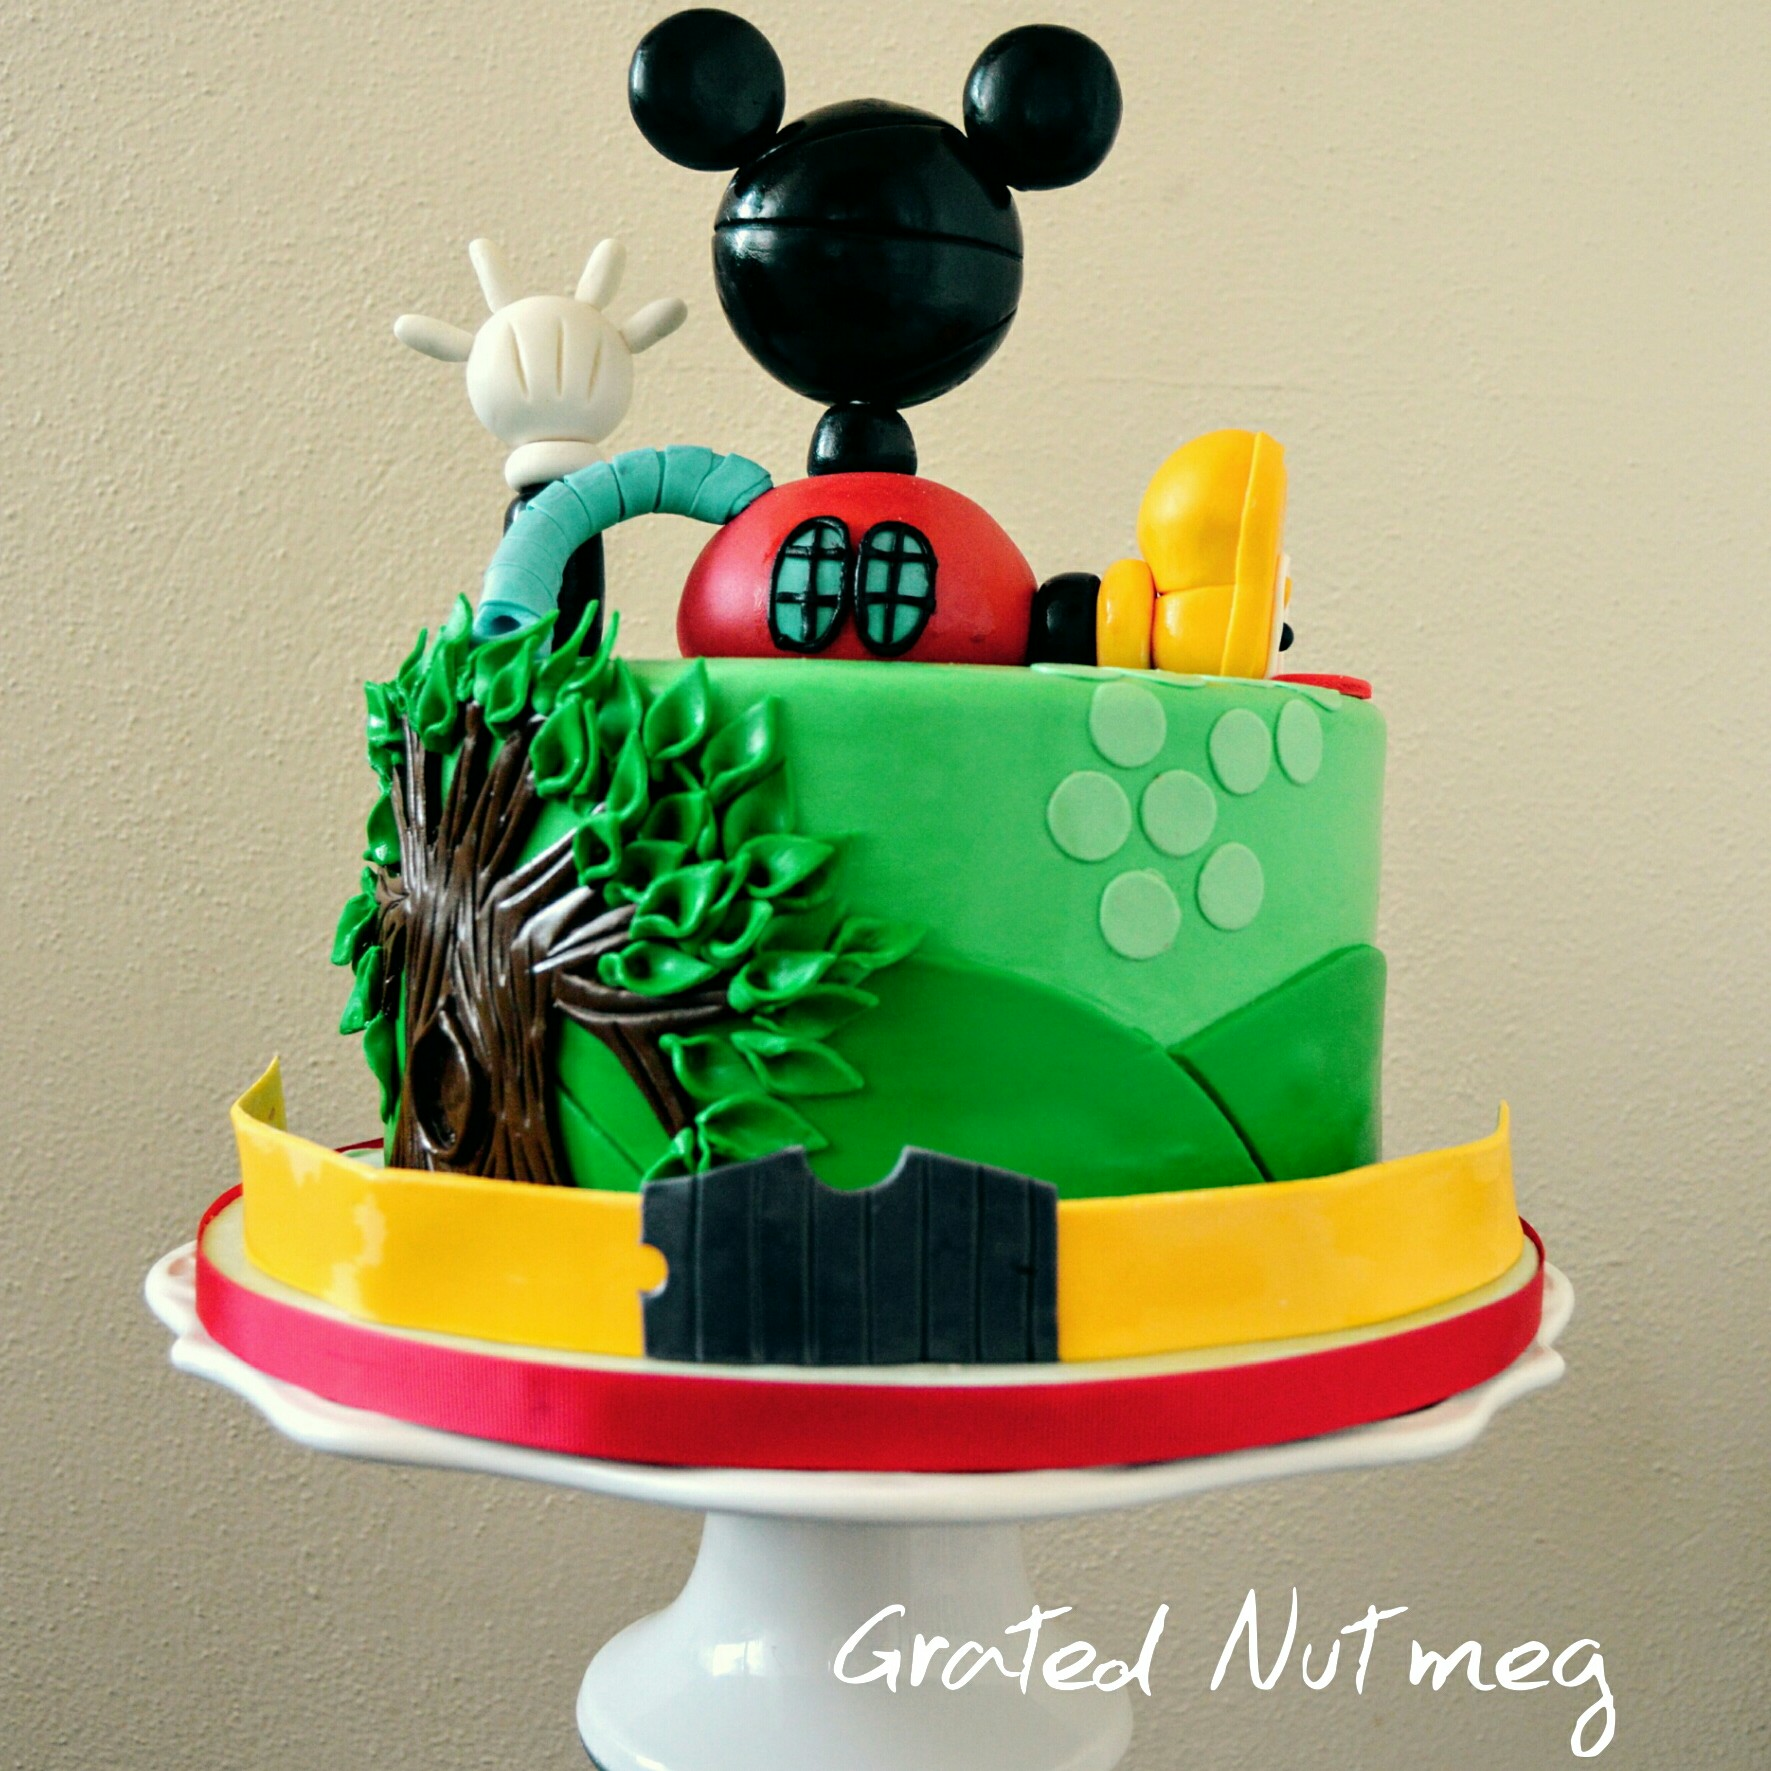 Mickey Mouse Clubhouse Cake 2 – Grated Nutmeg